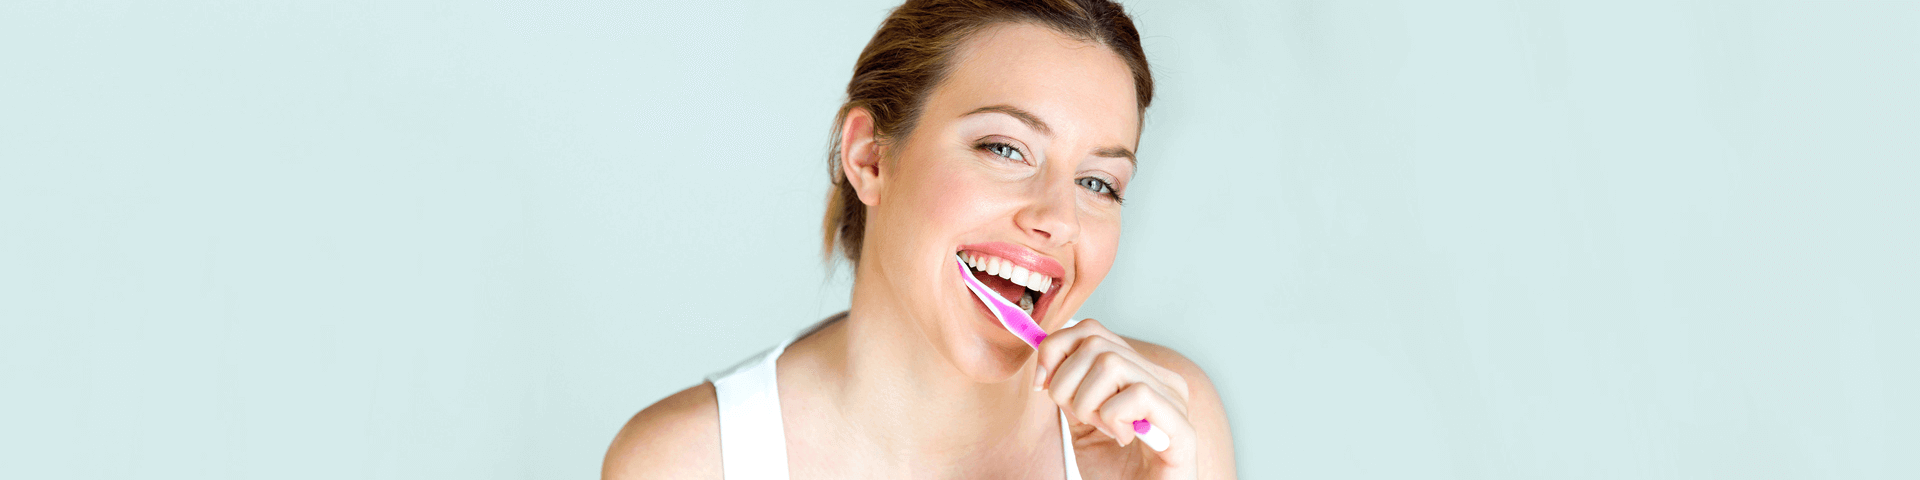 Brush Away Every Day: 3 Bad Habits To Break For Healthier Teeth